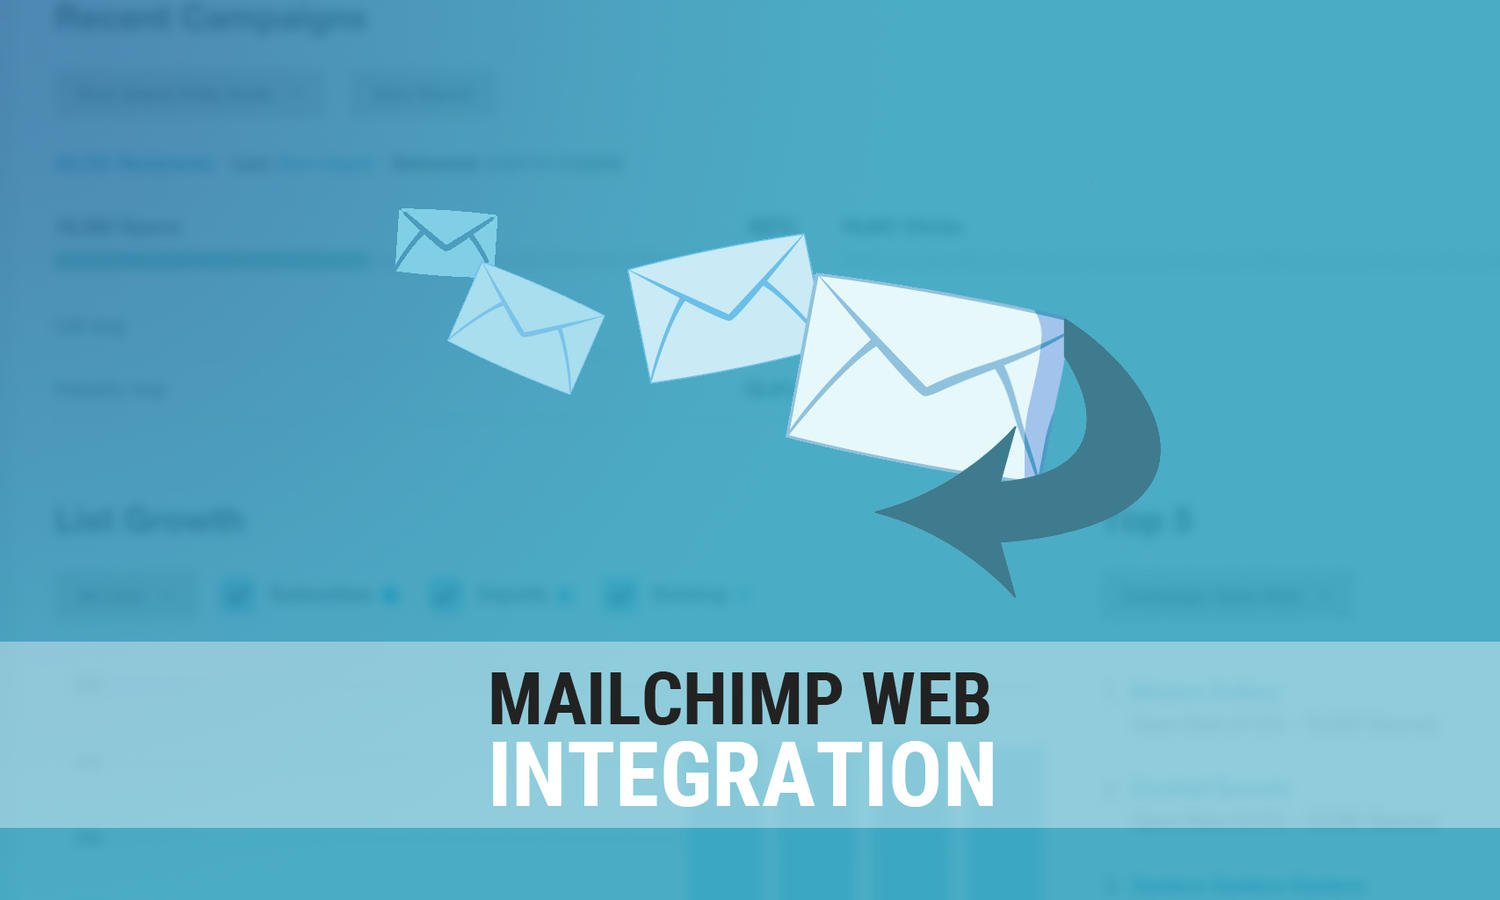 Mailchimp Form Integration by madridnyc - 110921